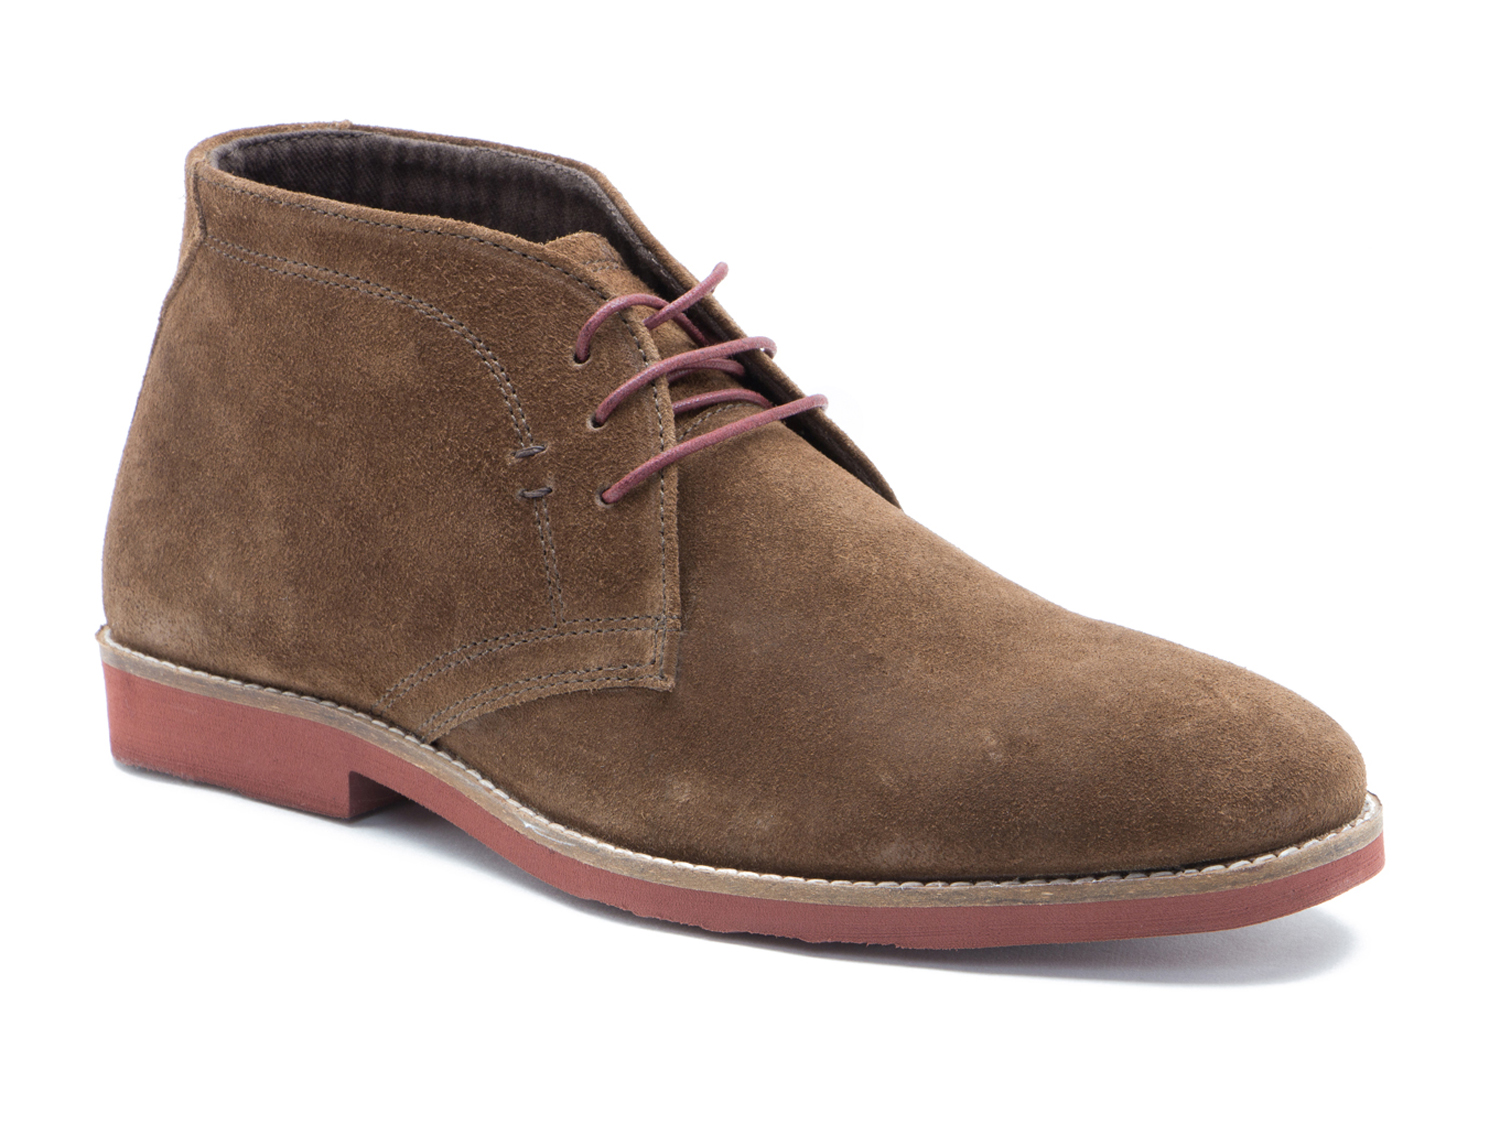 red tape dorney brown suede mens casual desert boots ebay. Black Bedroom Furniture Sets. Home Design Ideas